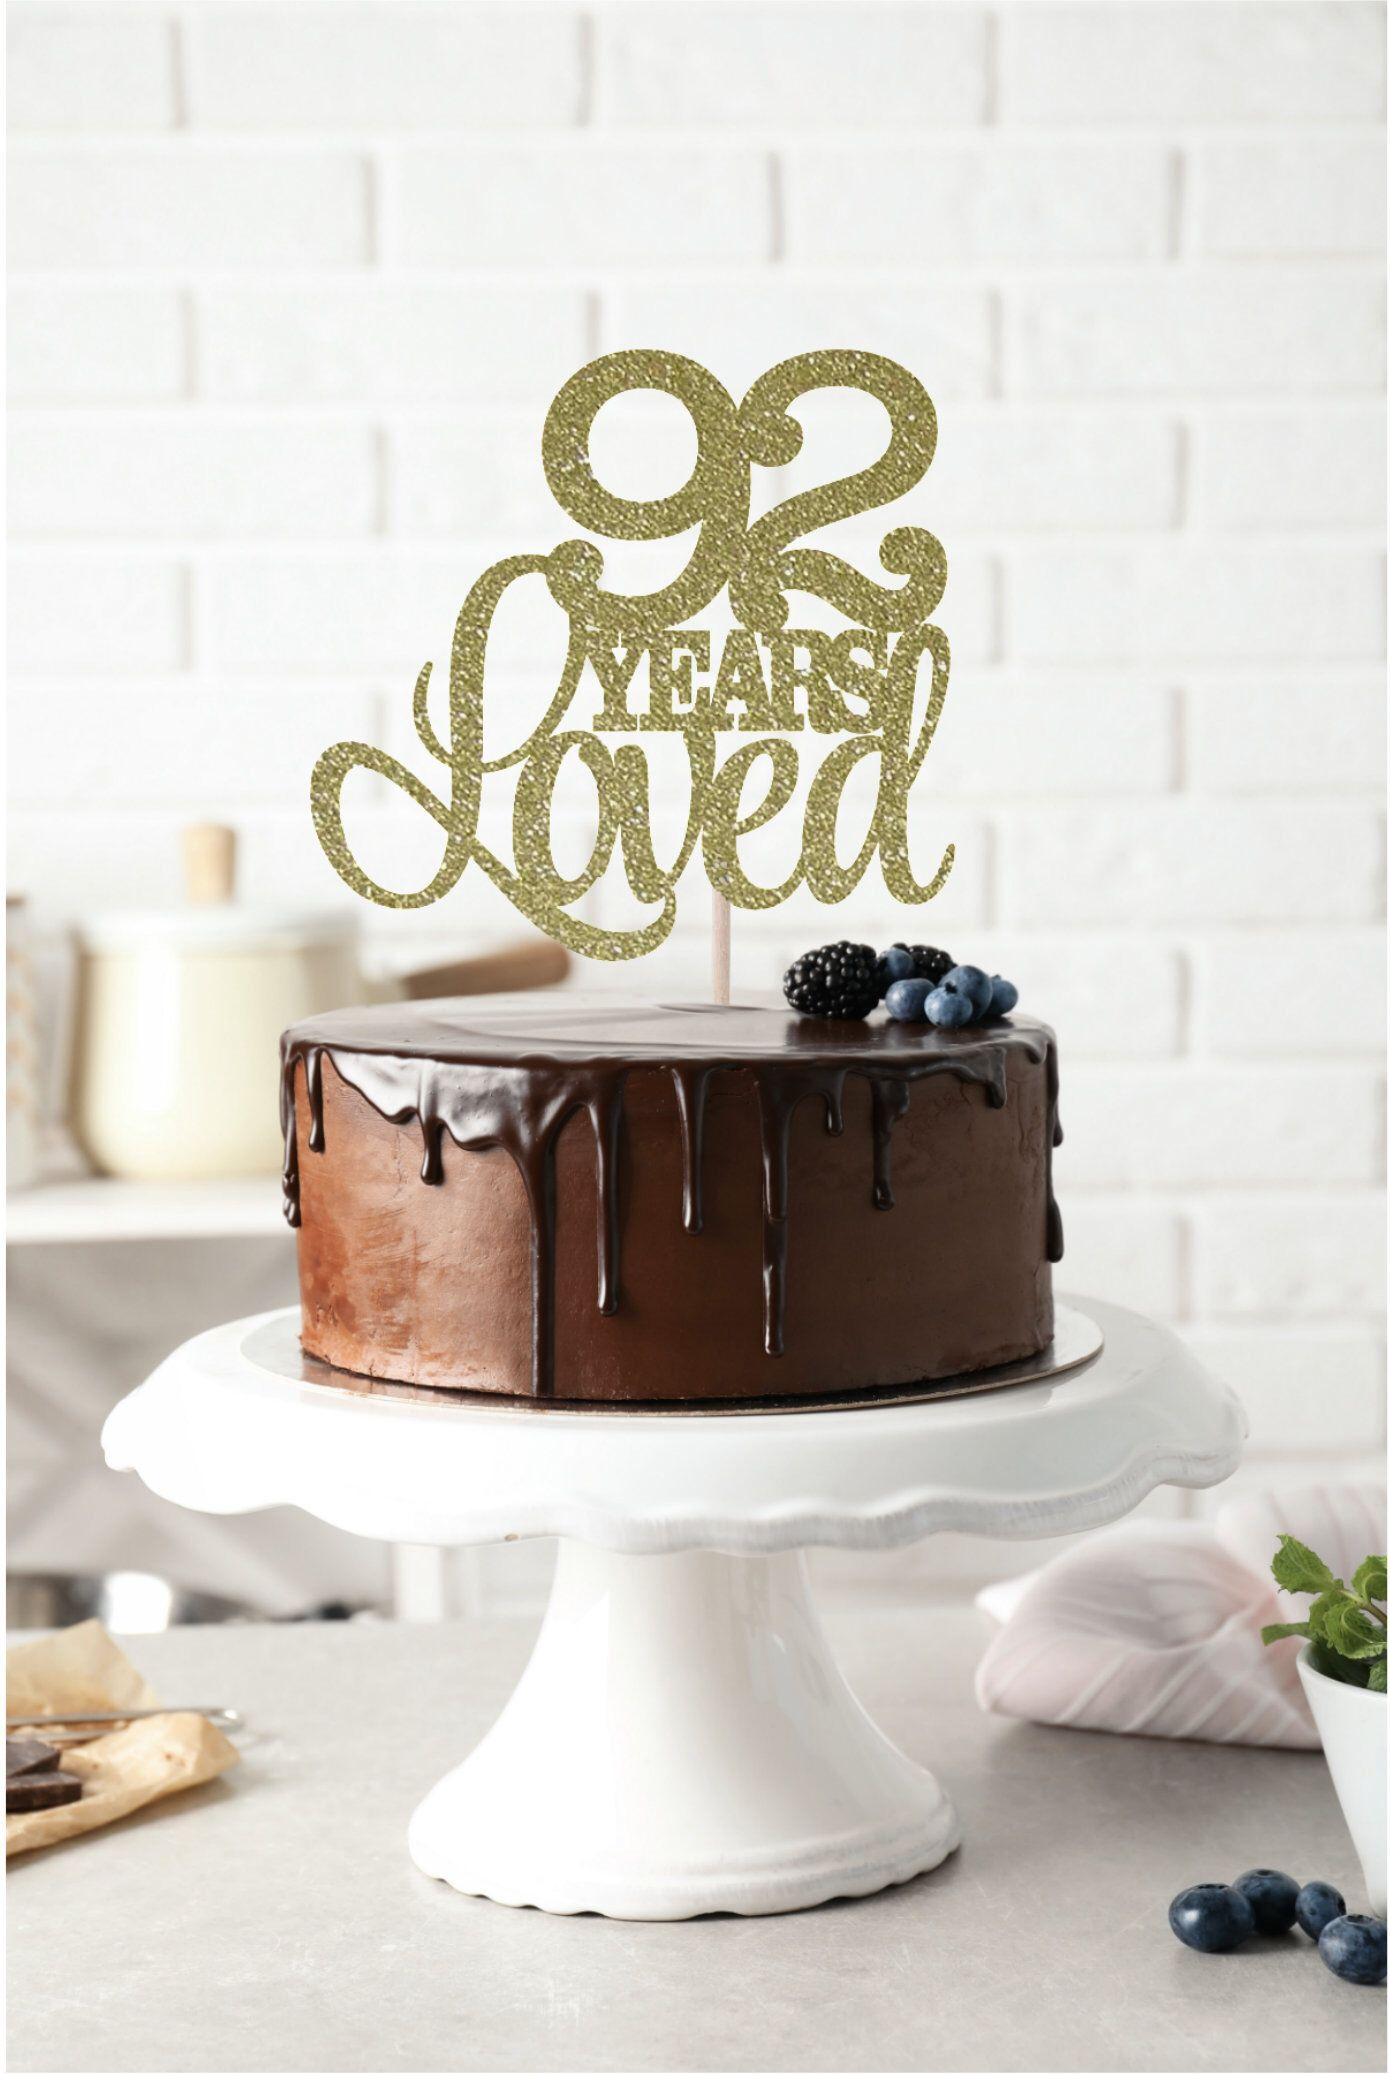 92 Years Loved Cake Topper, 92nd Birthday Cake Topper